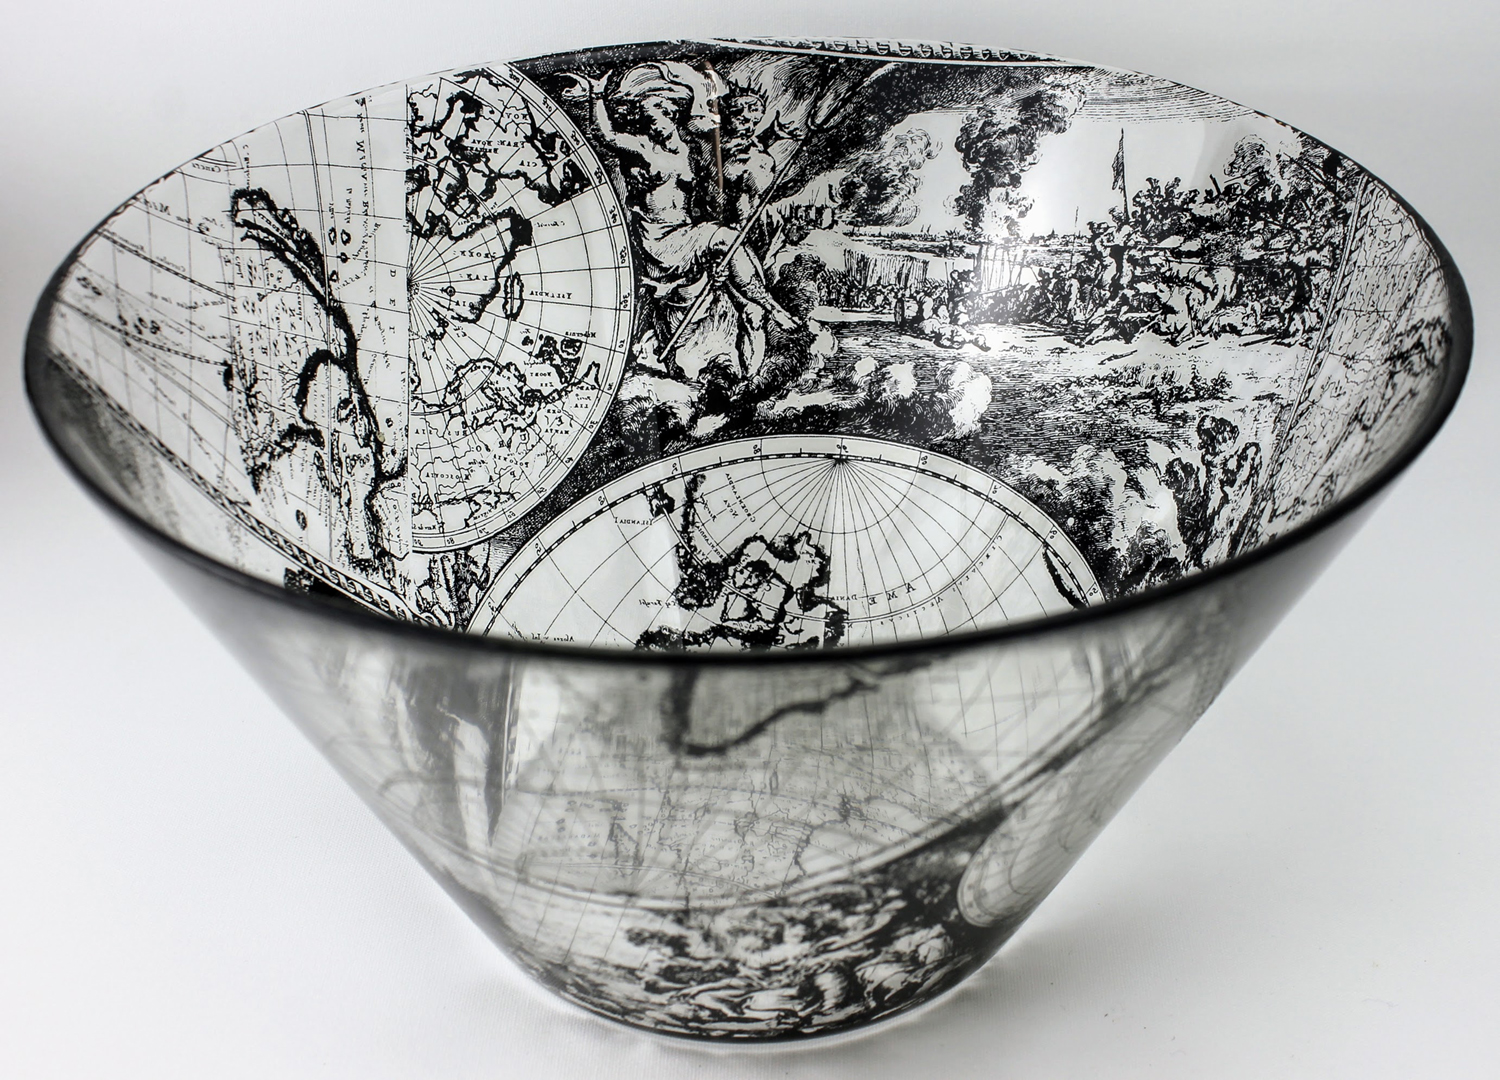 Large glass bowl with allegorical scenes from a 17th century world map with Ares the god of war